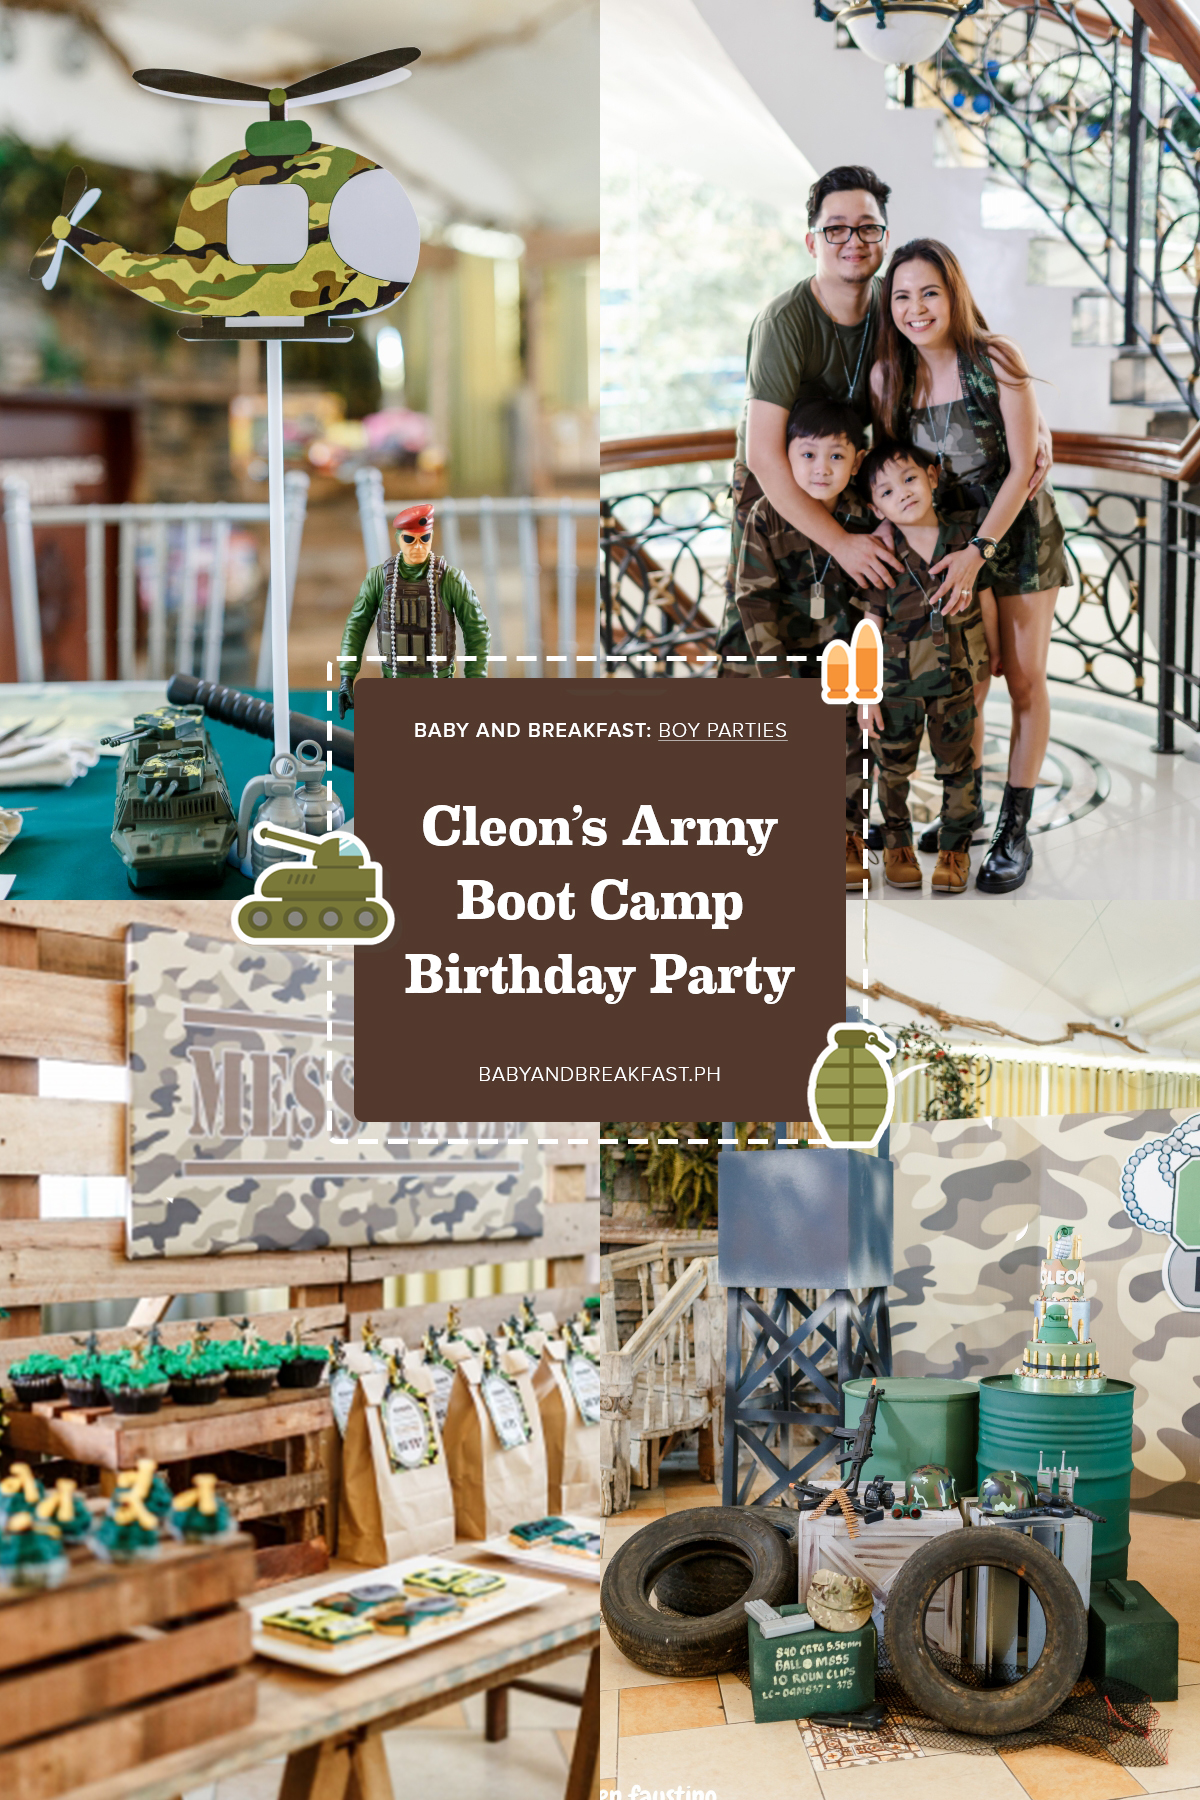 Baby and Breakfast: Boy Parties Cleon's Army Boot Camp Birthday Party